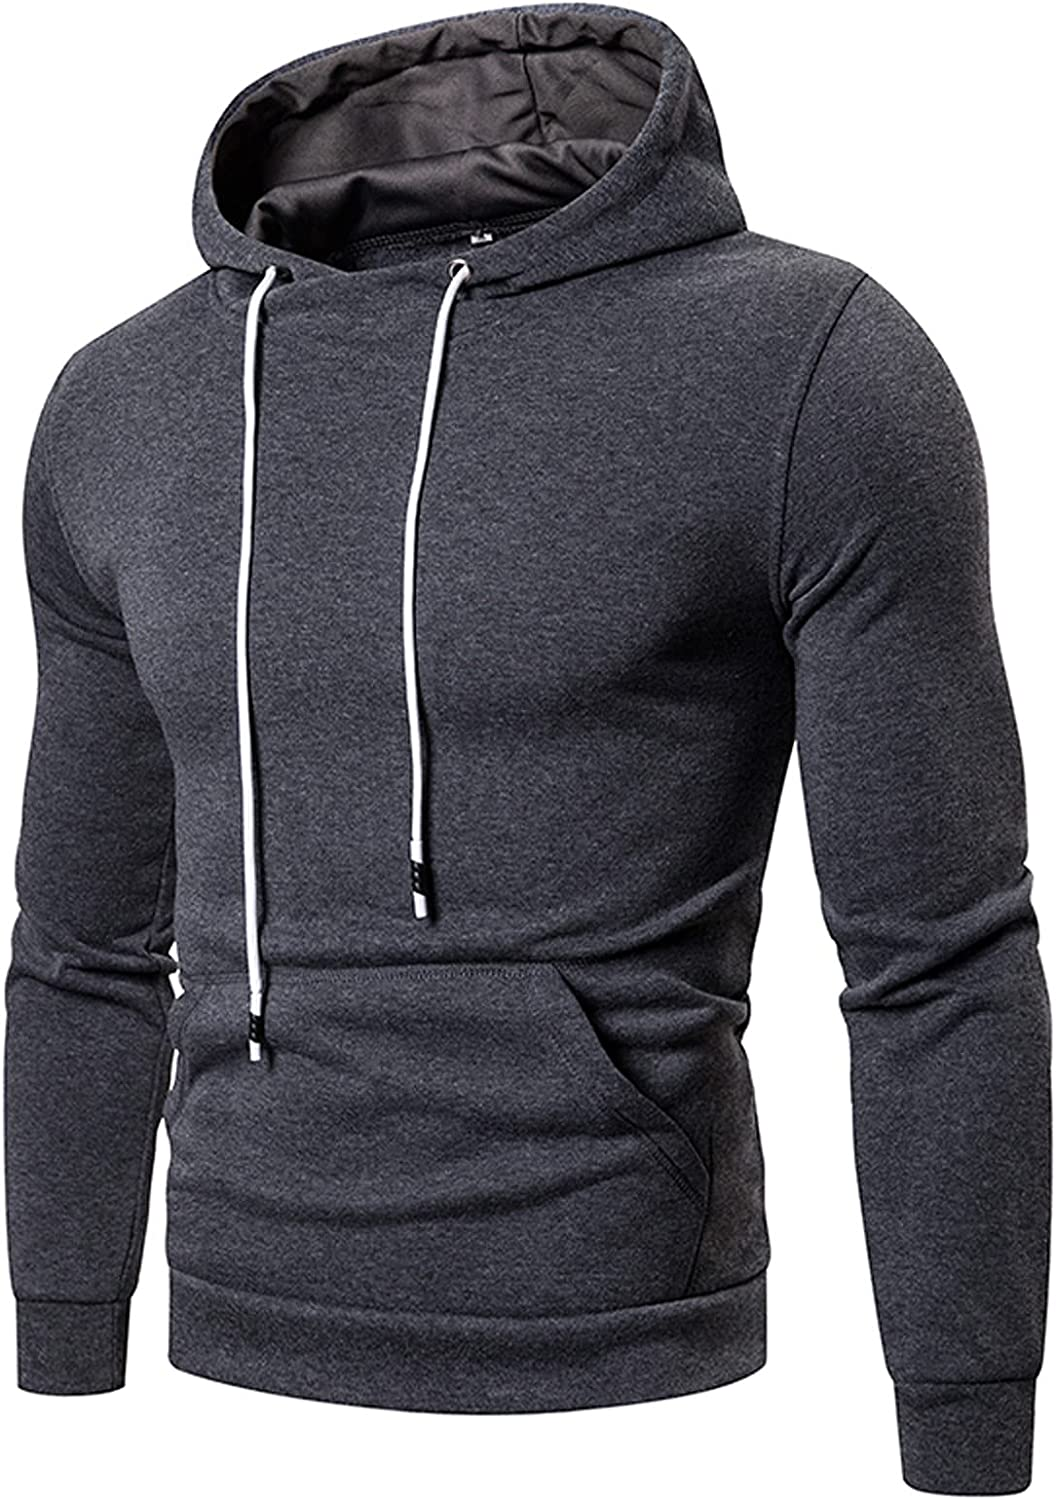 HONGJ Hoodies for Mens, Fall Fashion Athletic Casual Solid Drawstring Workout Sports Hooded Sweatshirts with Pockets